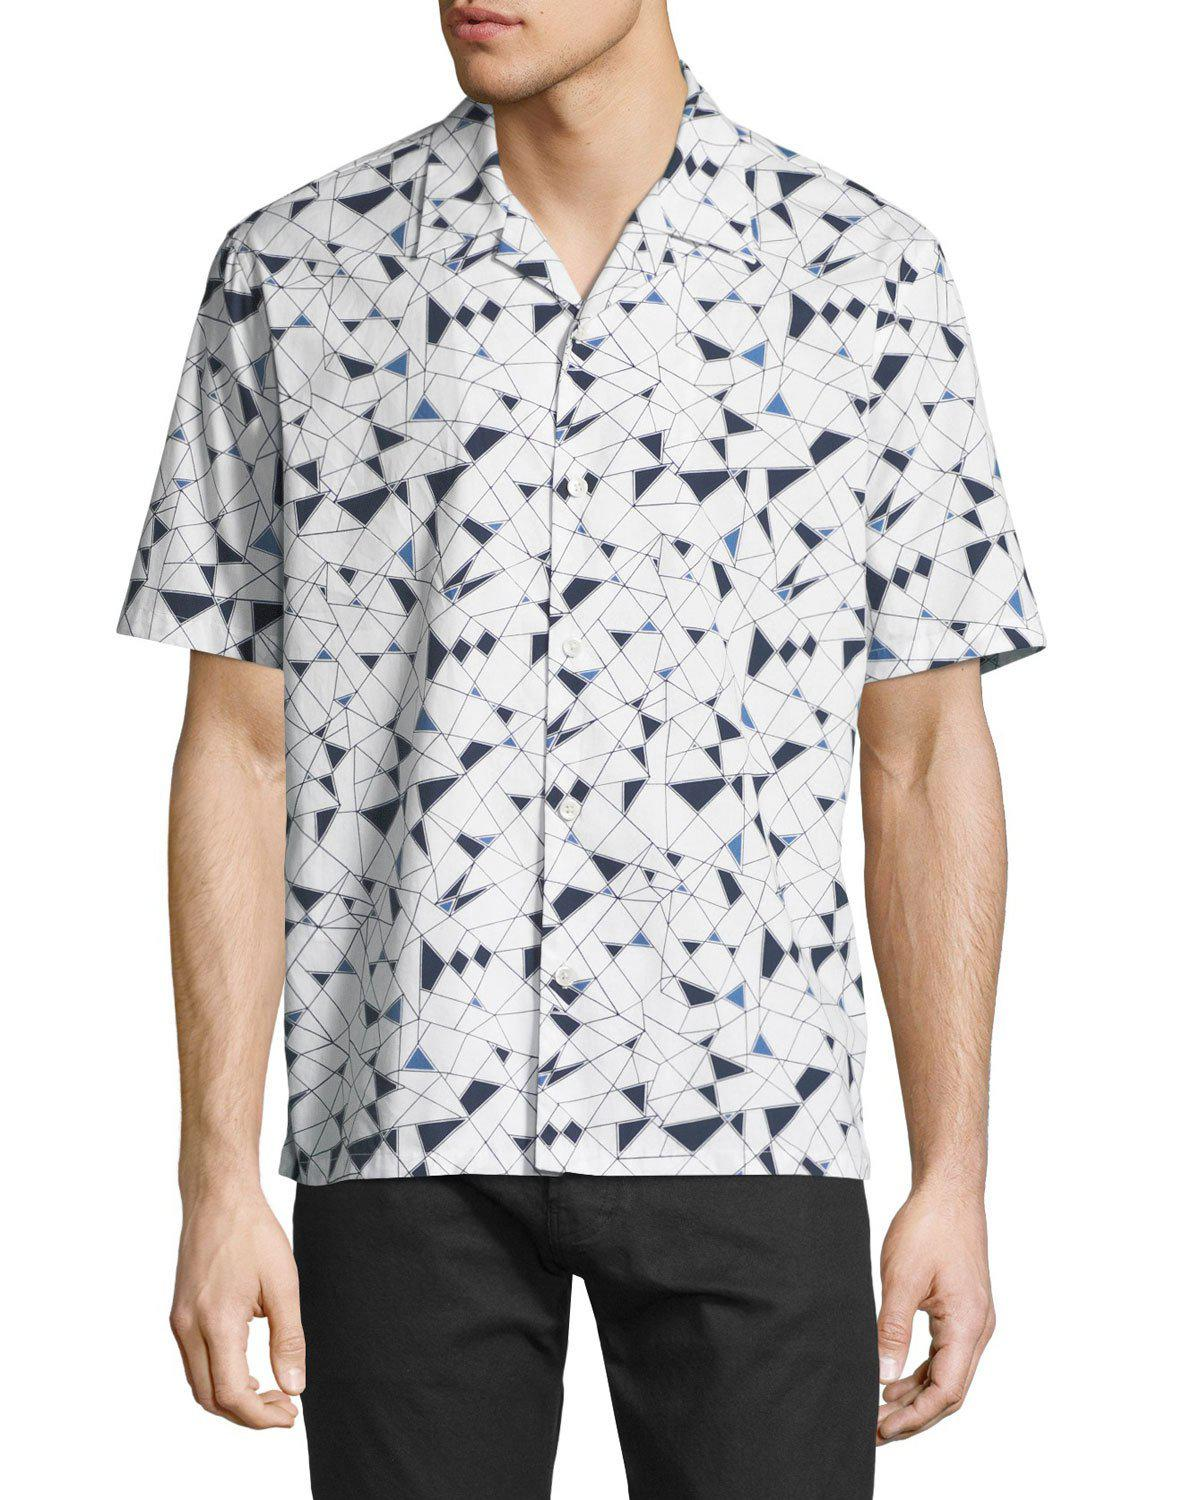 Mens Irving Geometric-Print Cotton Shirt Theory Outlet Wholesale Price Cheap Sale Eastbay Sale Fast Delivery Cpab2YY9